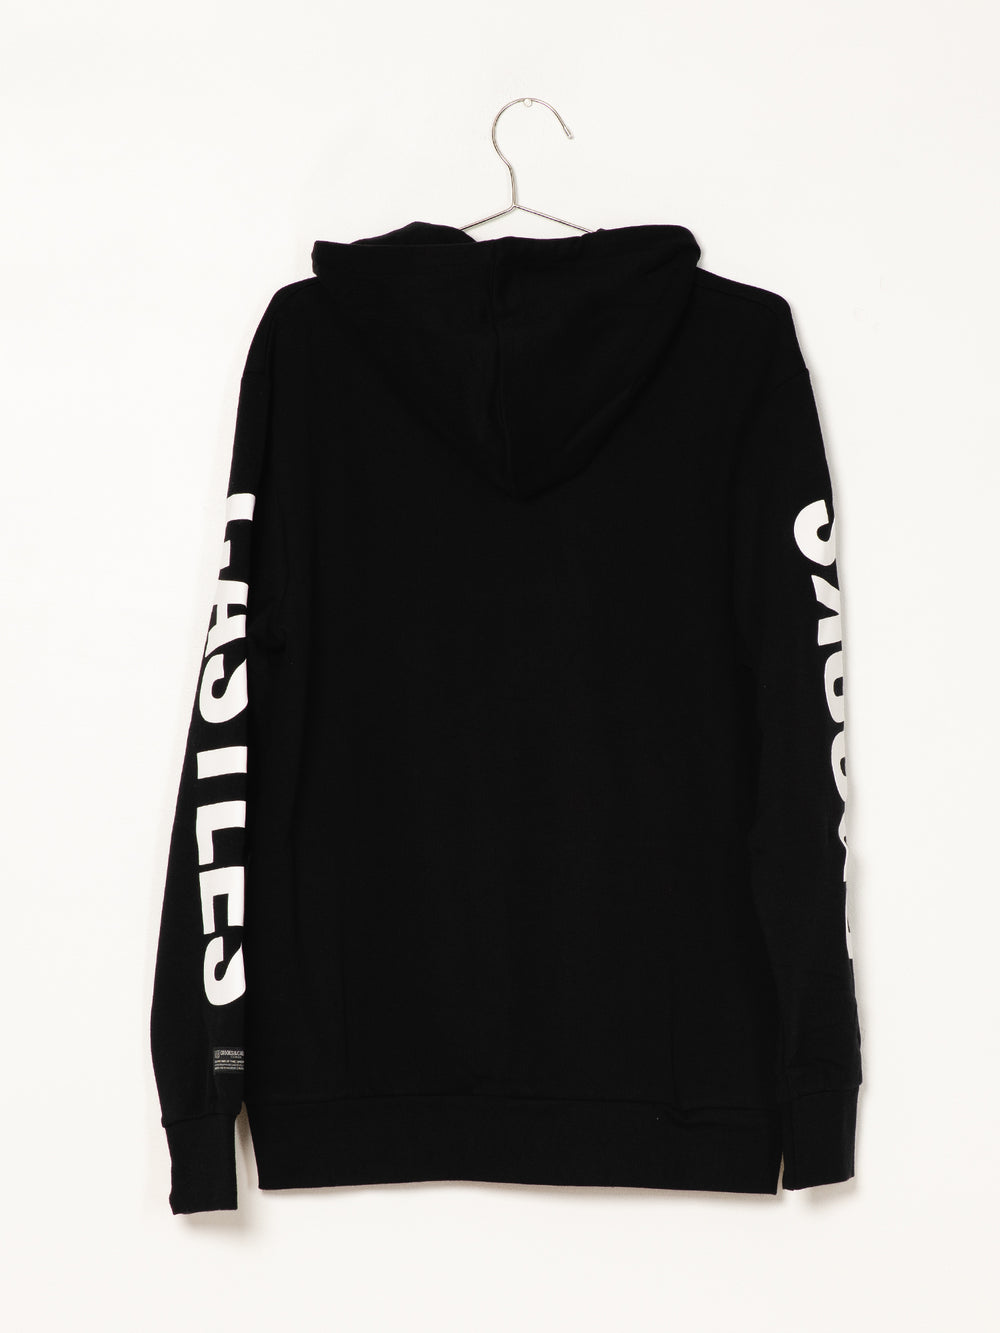 MENS CHAIN C PULLOVER HOOD - BLACK